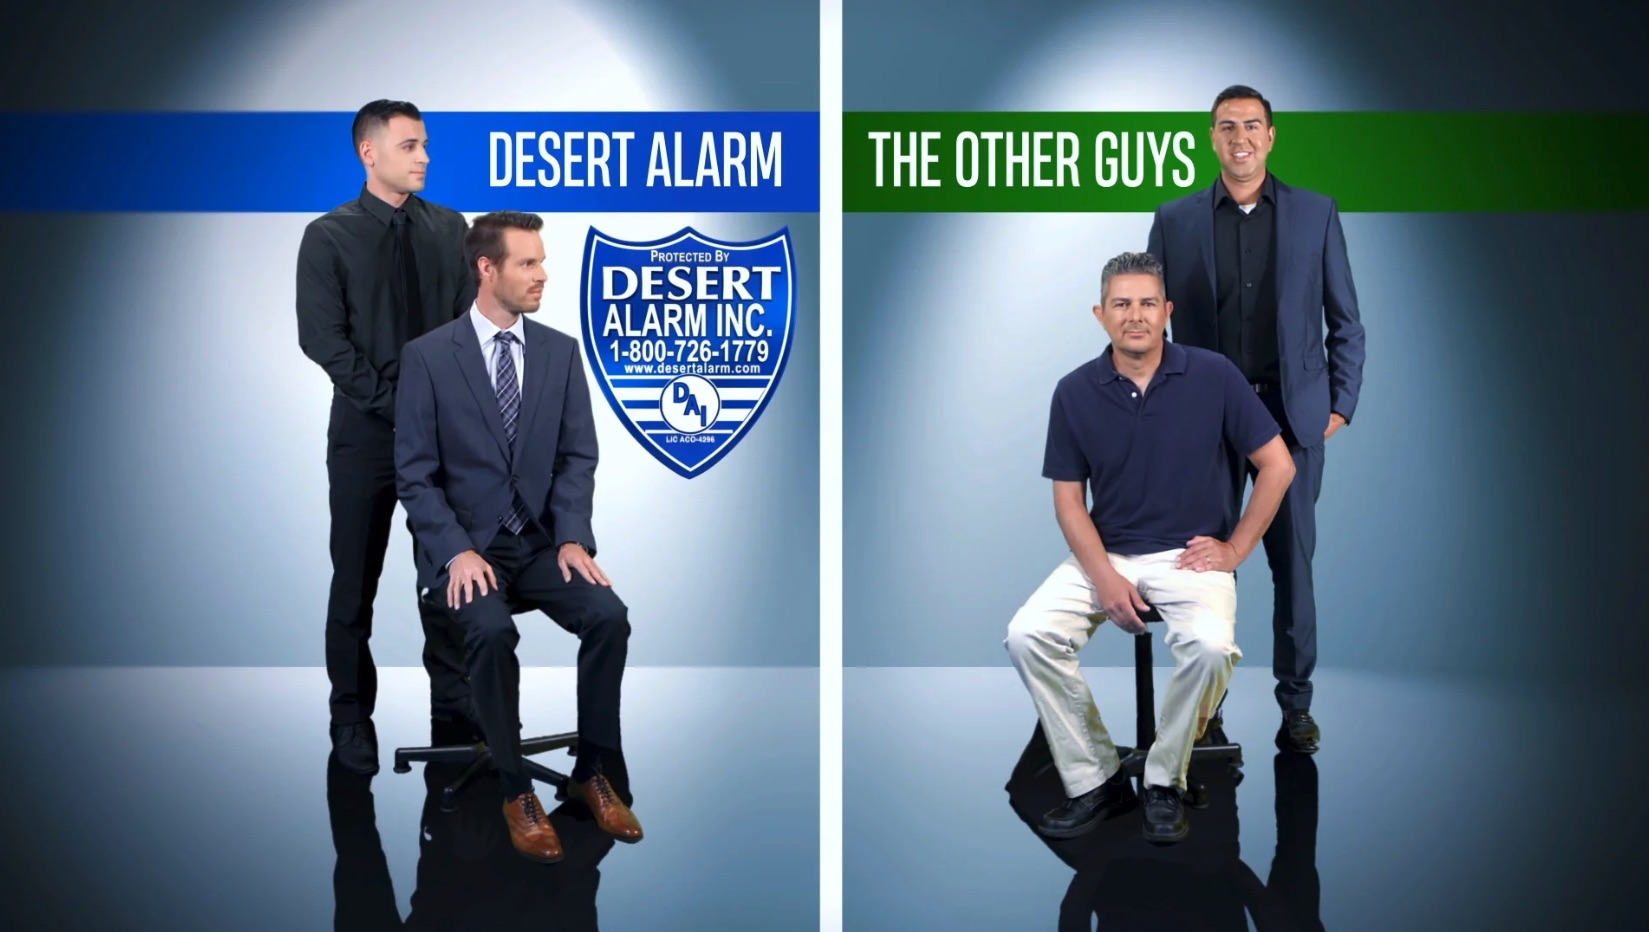 Home Security Systems | Alarm Response & Patrol Services | Desert Alarm